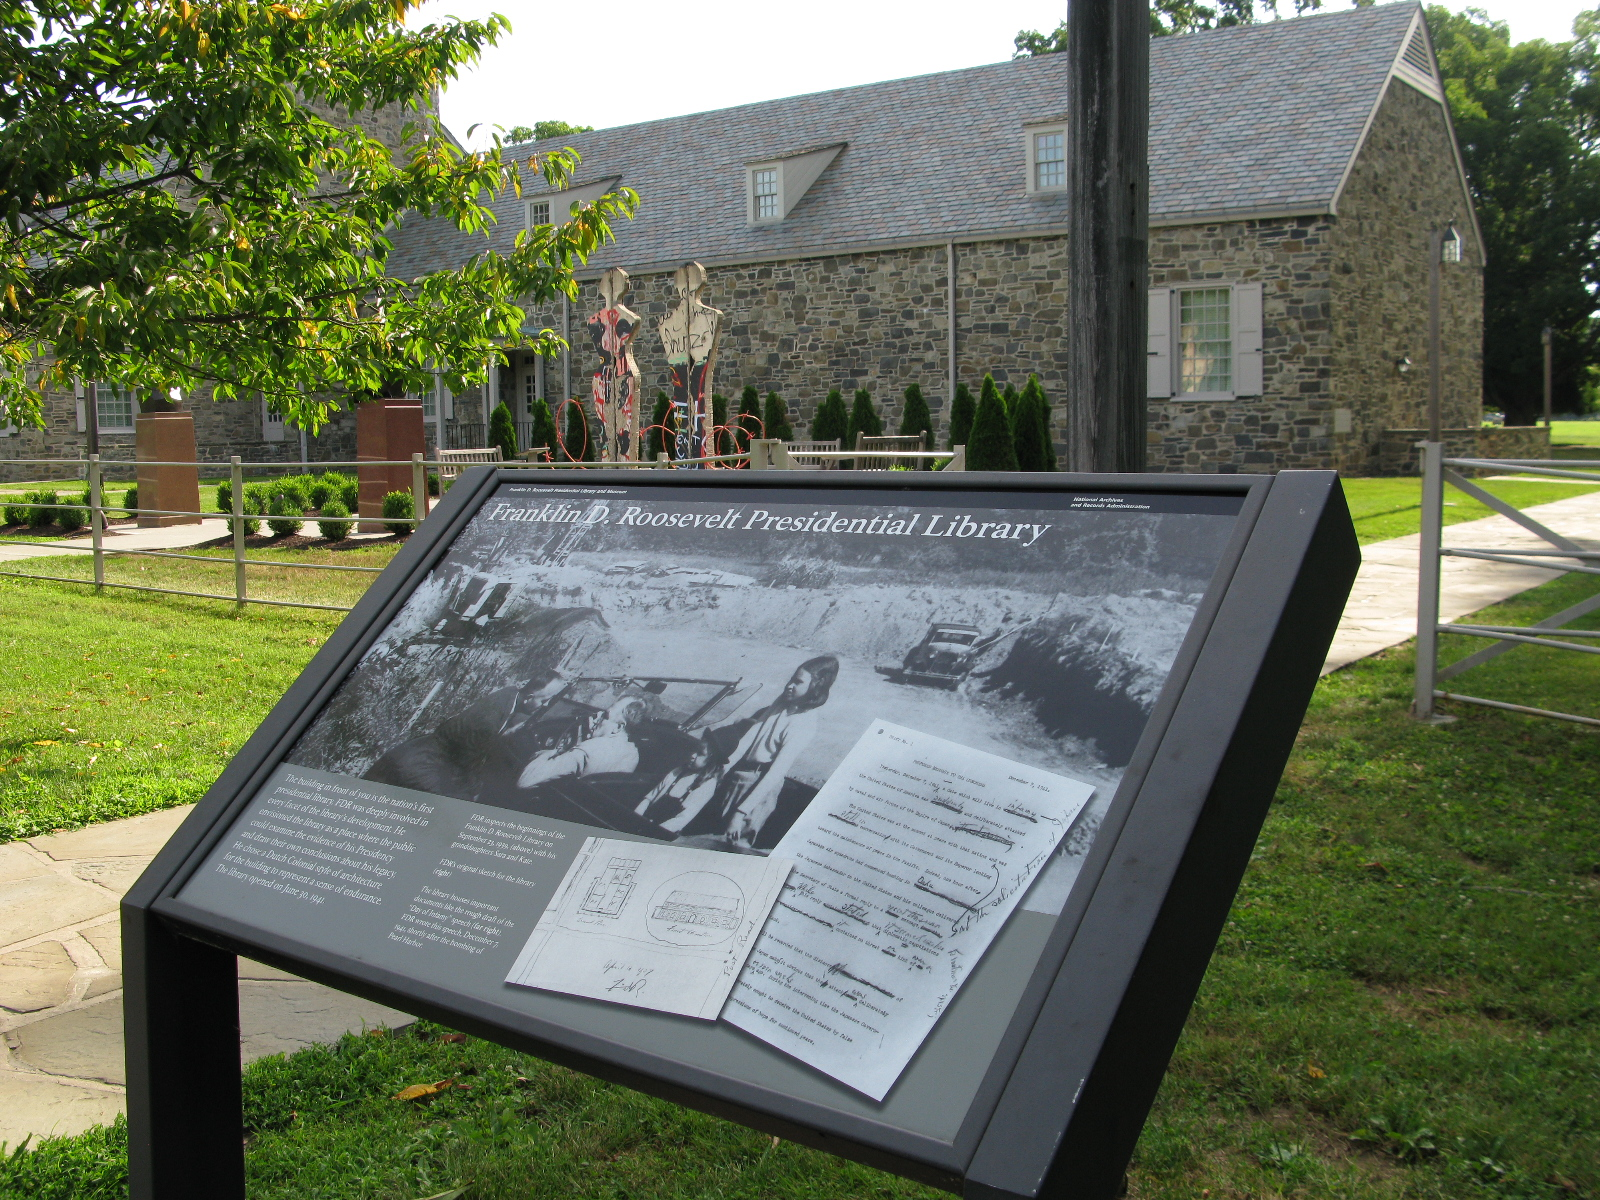 Informational plaque about the FDR Presidential Library & Museum